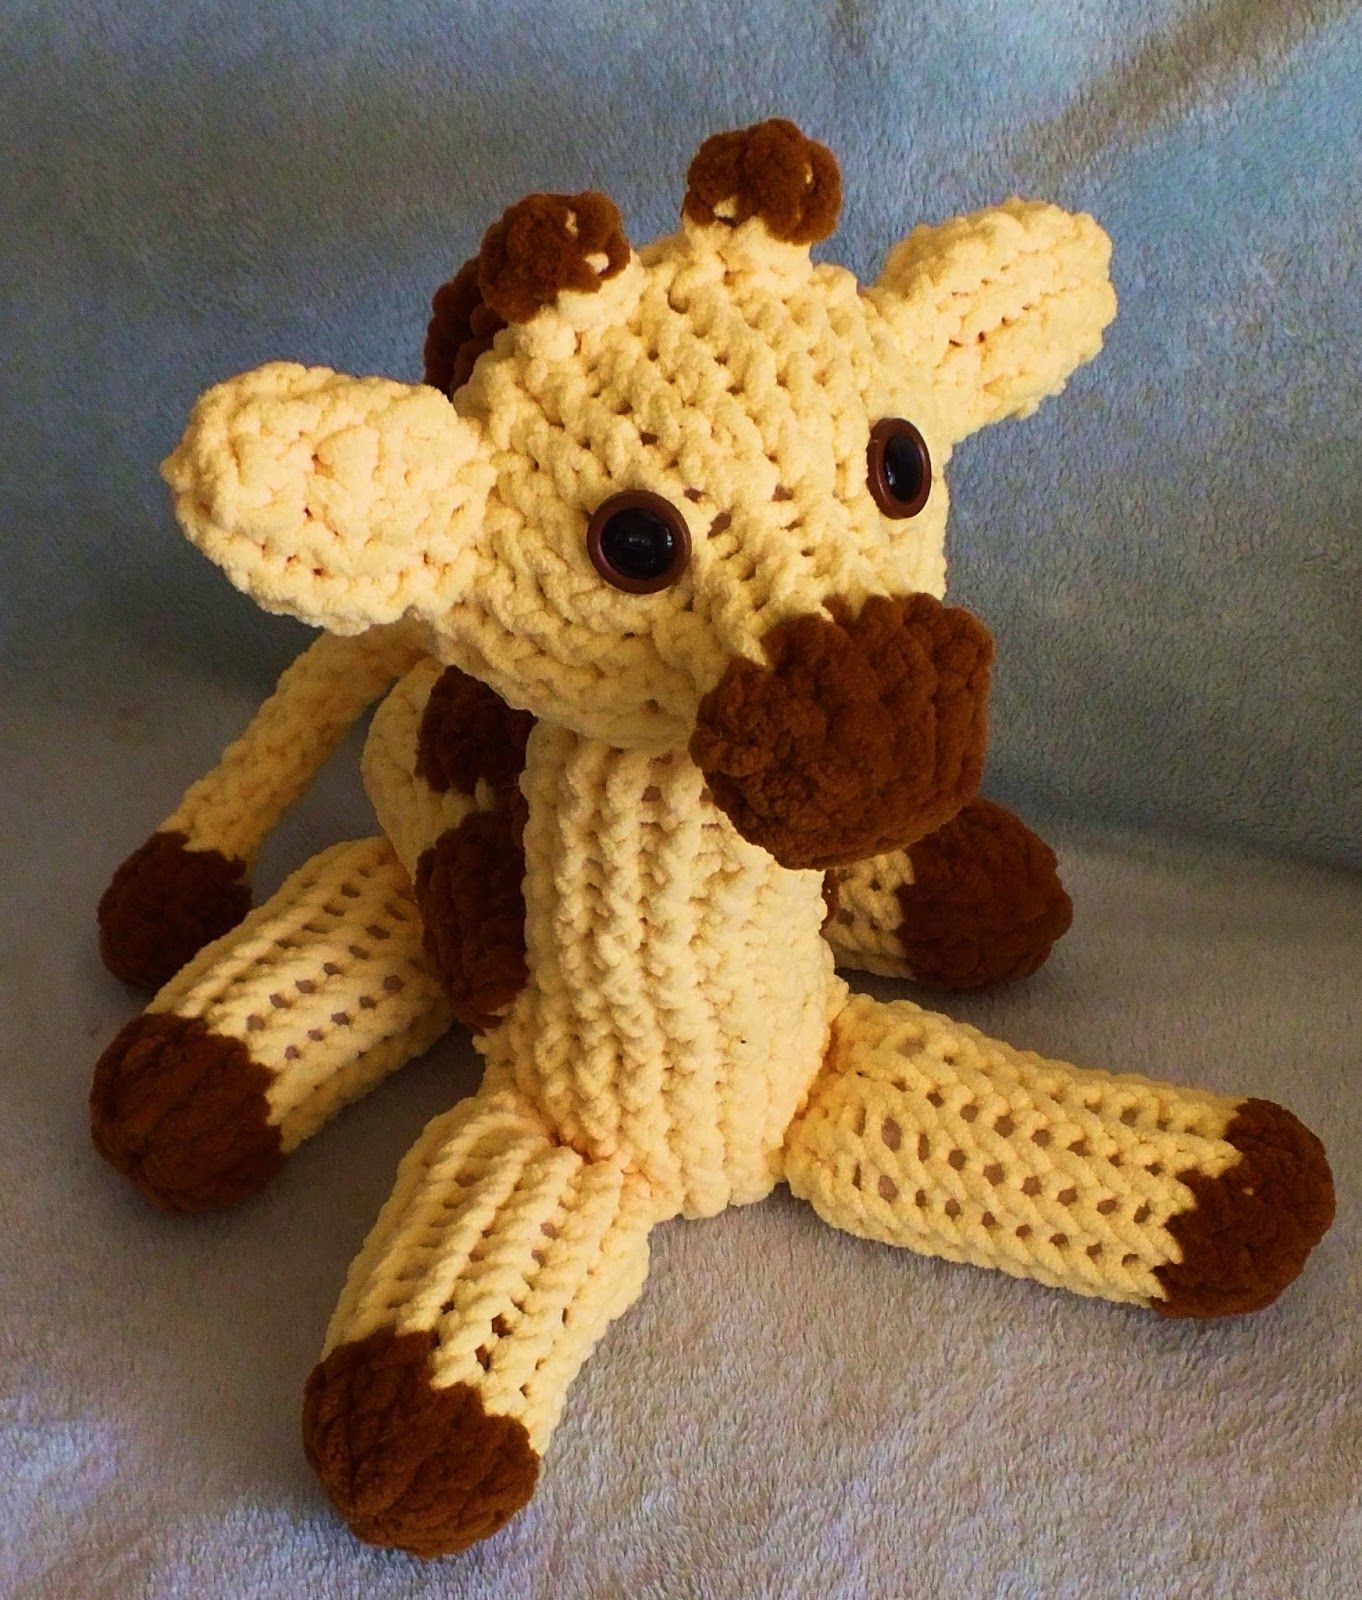 The Loom Muse Creations and Ideas: How to Loom Knit a Giraffe ...